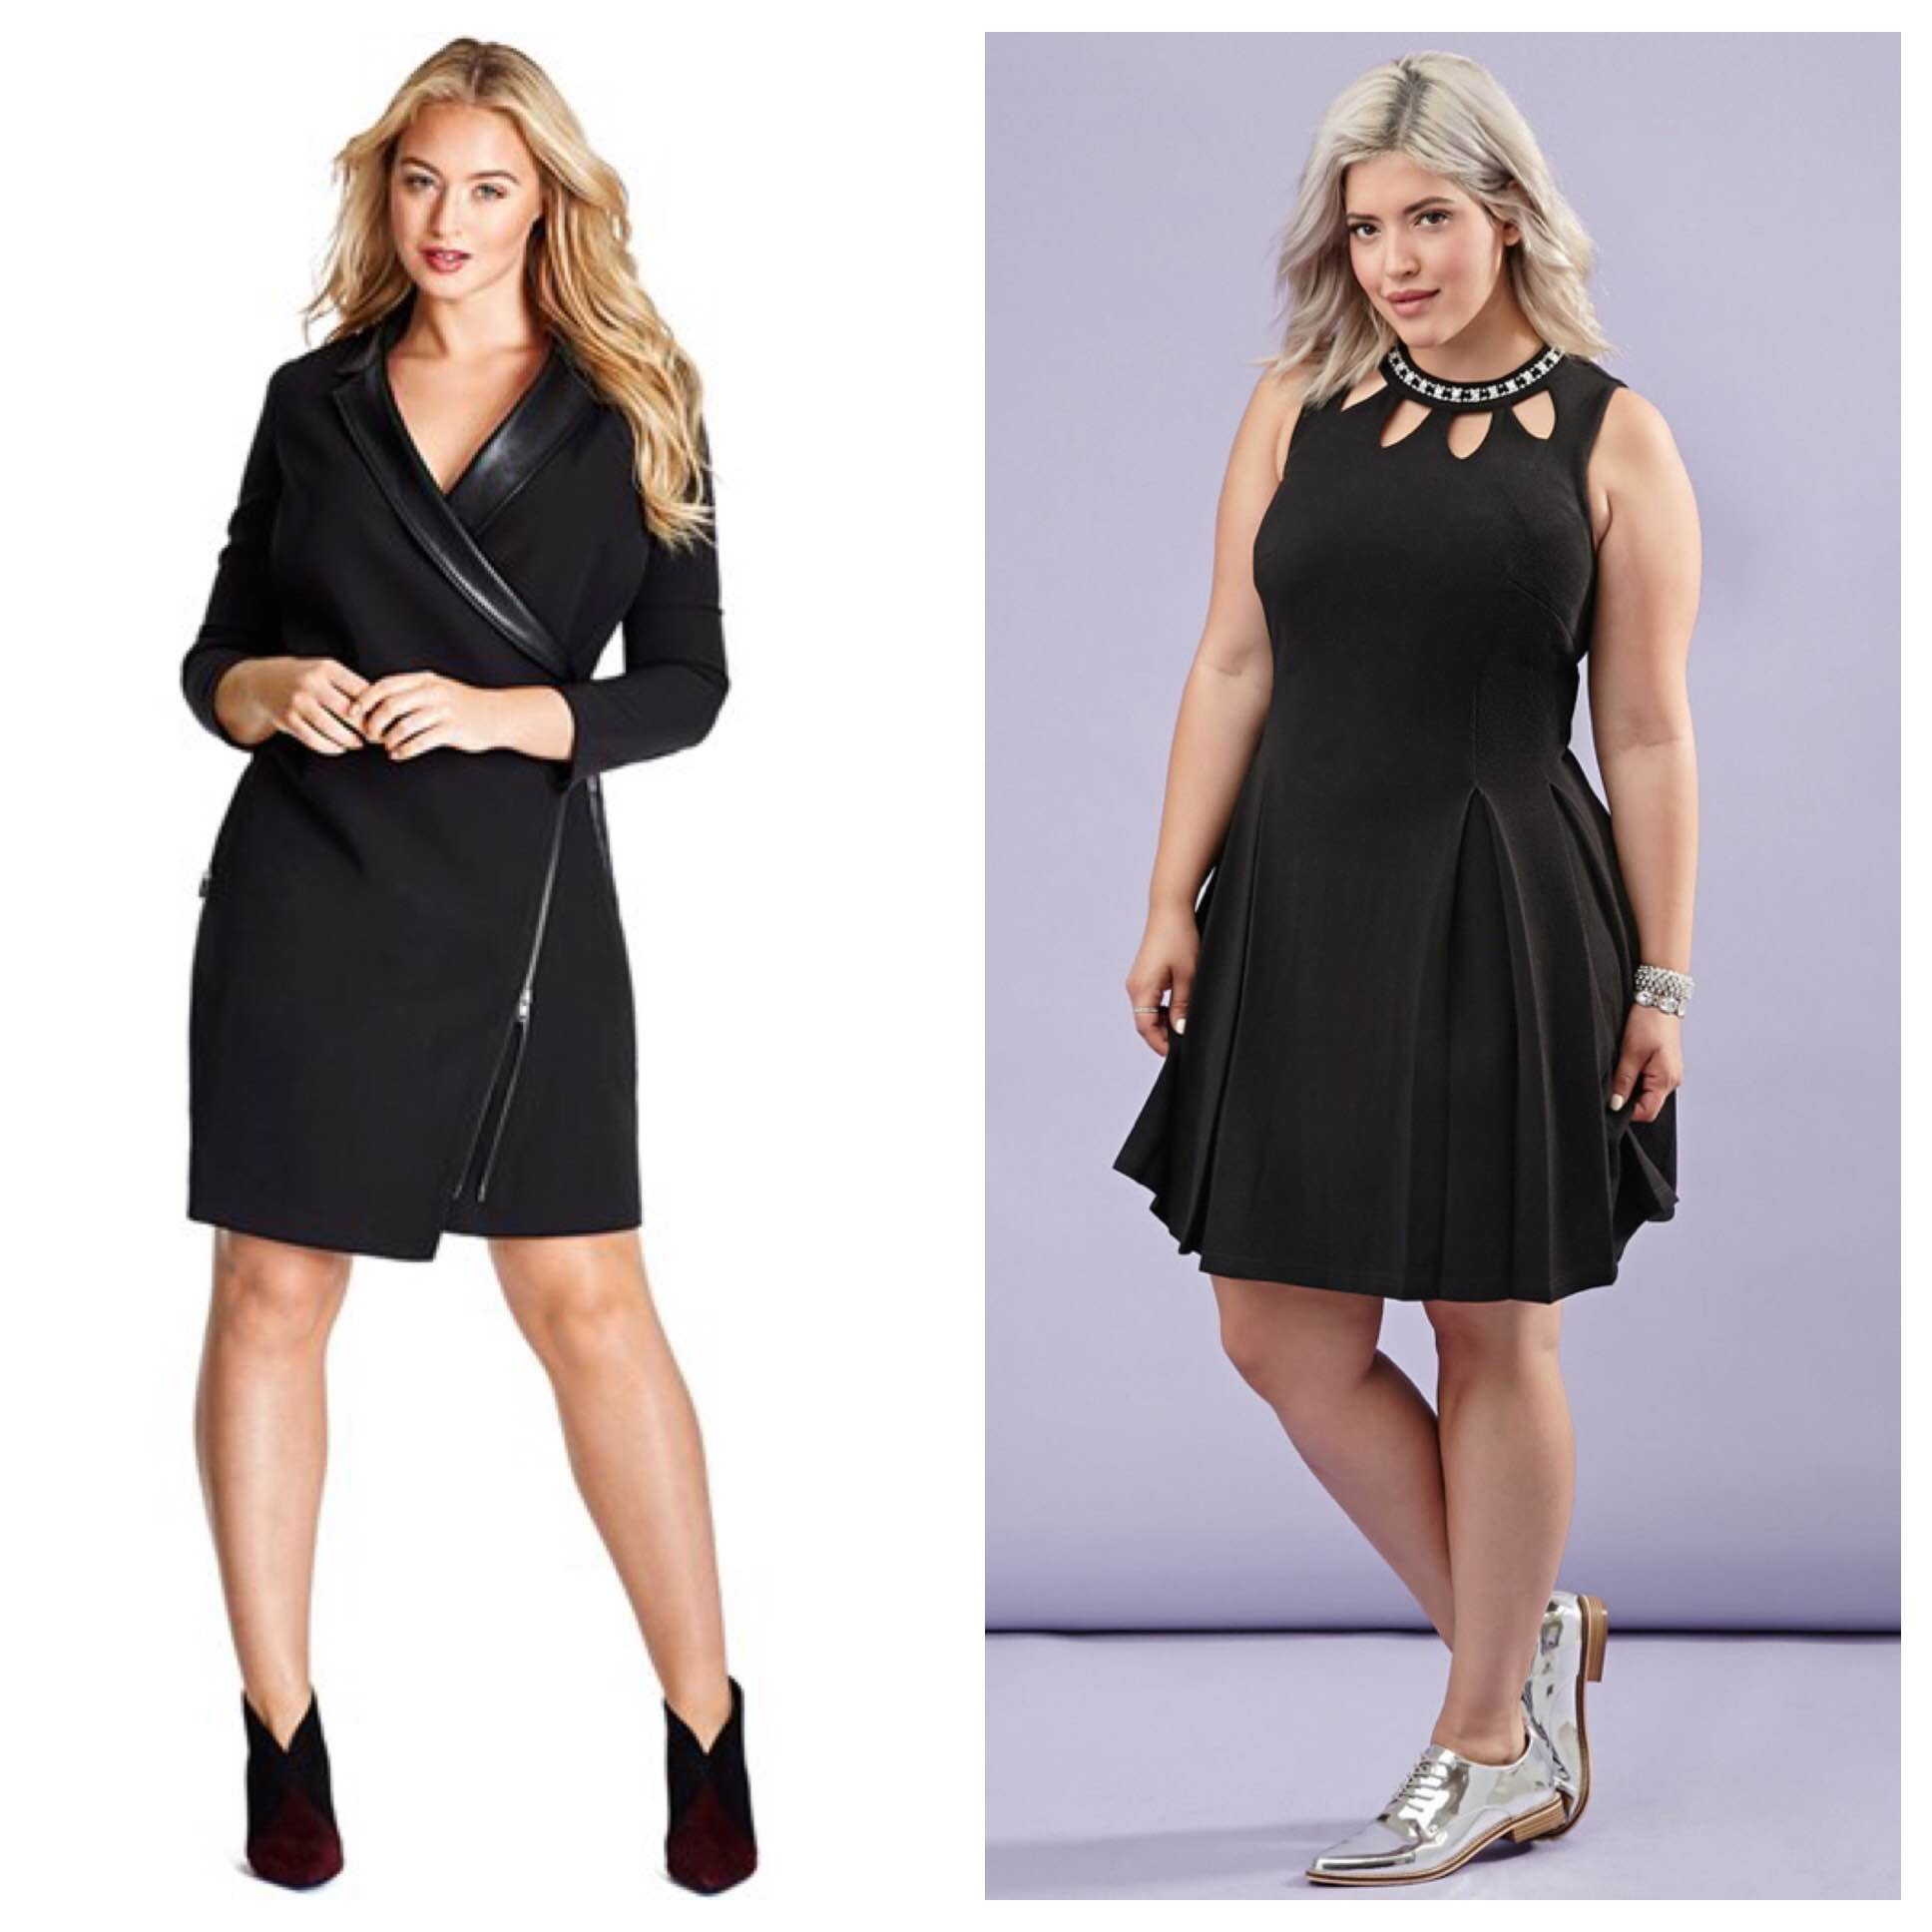 The Ultimate Plus Size Holiday Party Guide 2015: The LBD